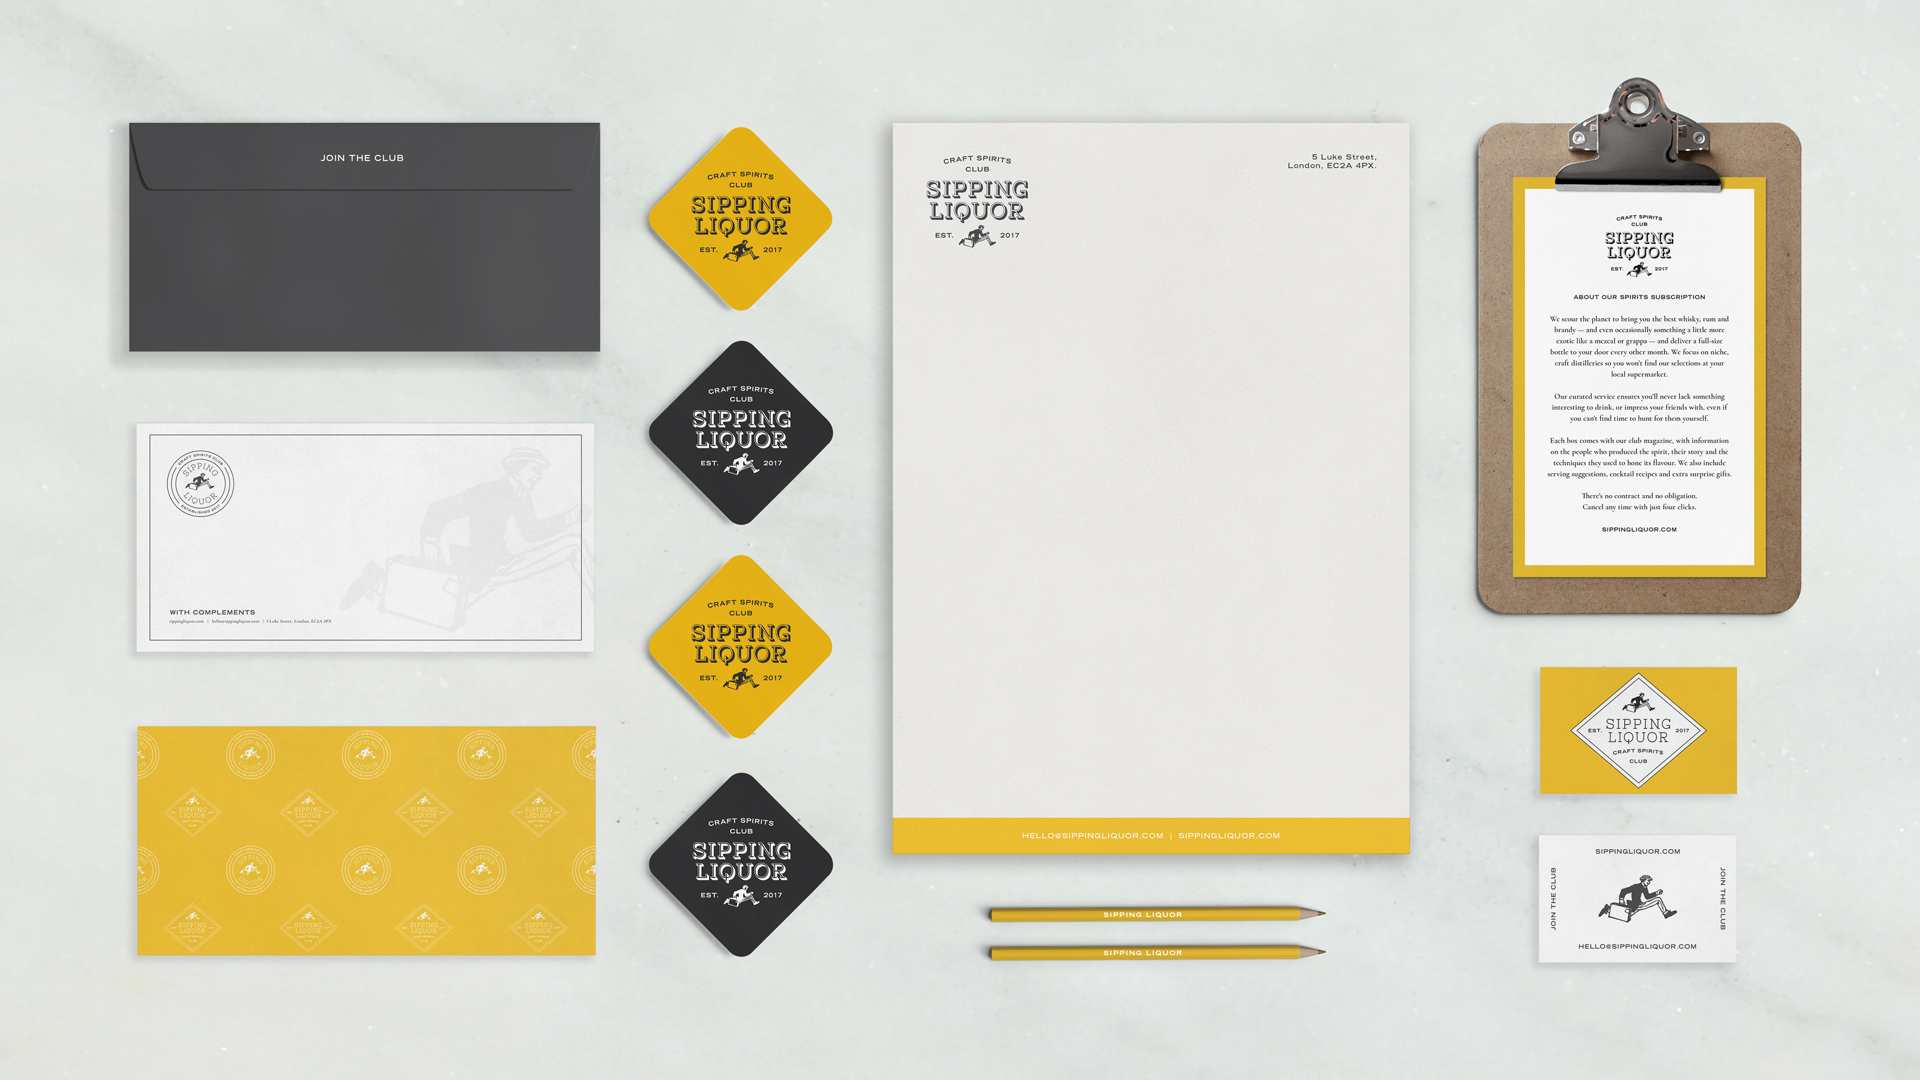 Mockup of various stationary assets for Sipping Liquor- logo featuring graphic of black and white man running. Pencils/ letterheads/envelopes/ business cards. Graphic design by Barefaced Studios, design agency based in Islington, North London.